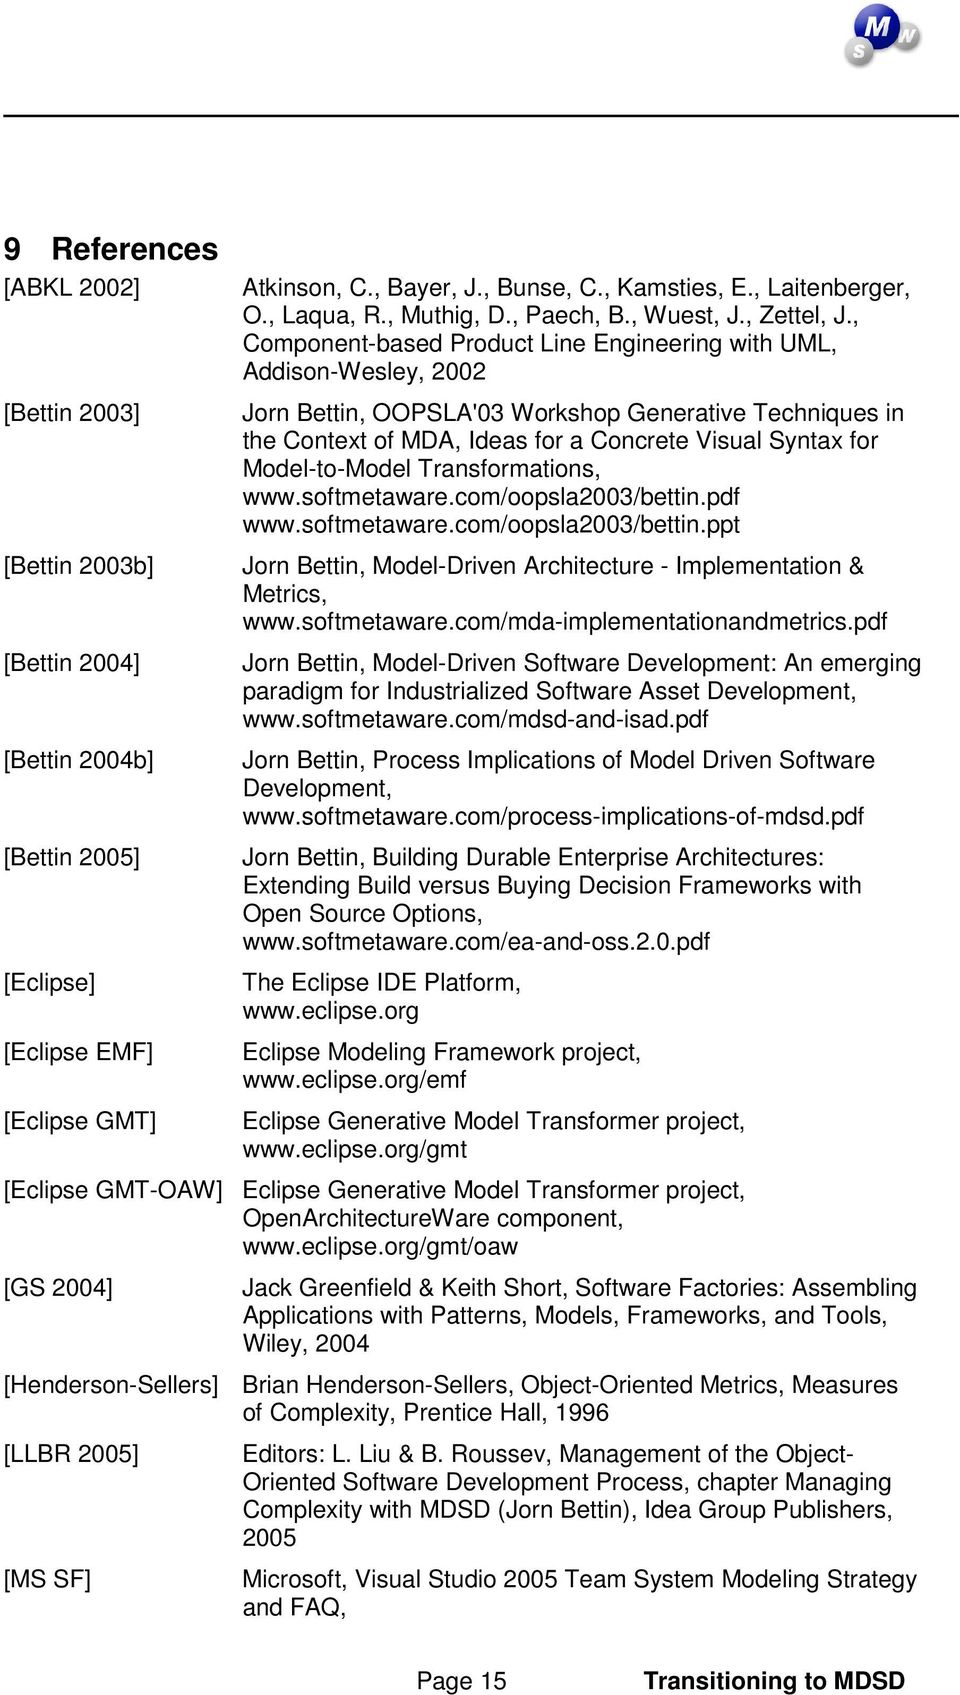 , Component-based Product Line Engineering with UML, Addison-Wesley, 2002 Jorn Bettin, OOPSLA'03 Workshop Generative Techniques in the Context of MDA, Ideas for a Concrete Visual Syntax for